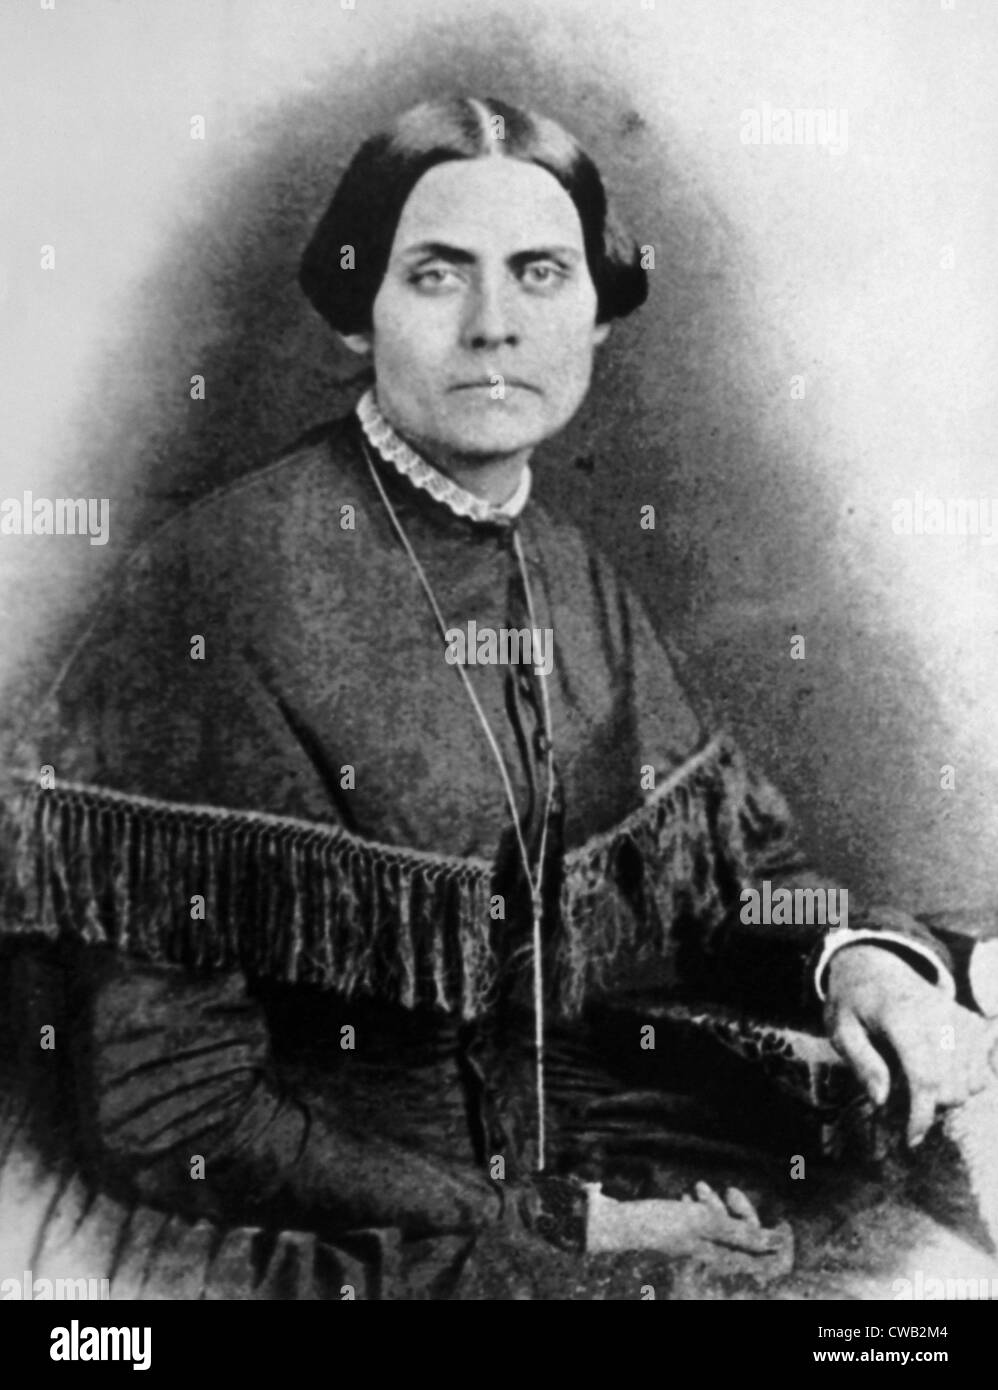 Susan B. Anthony, (1820-1906), leader of the women's suffrage movement - Stock Image